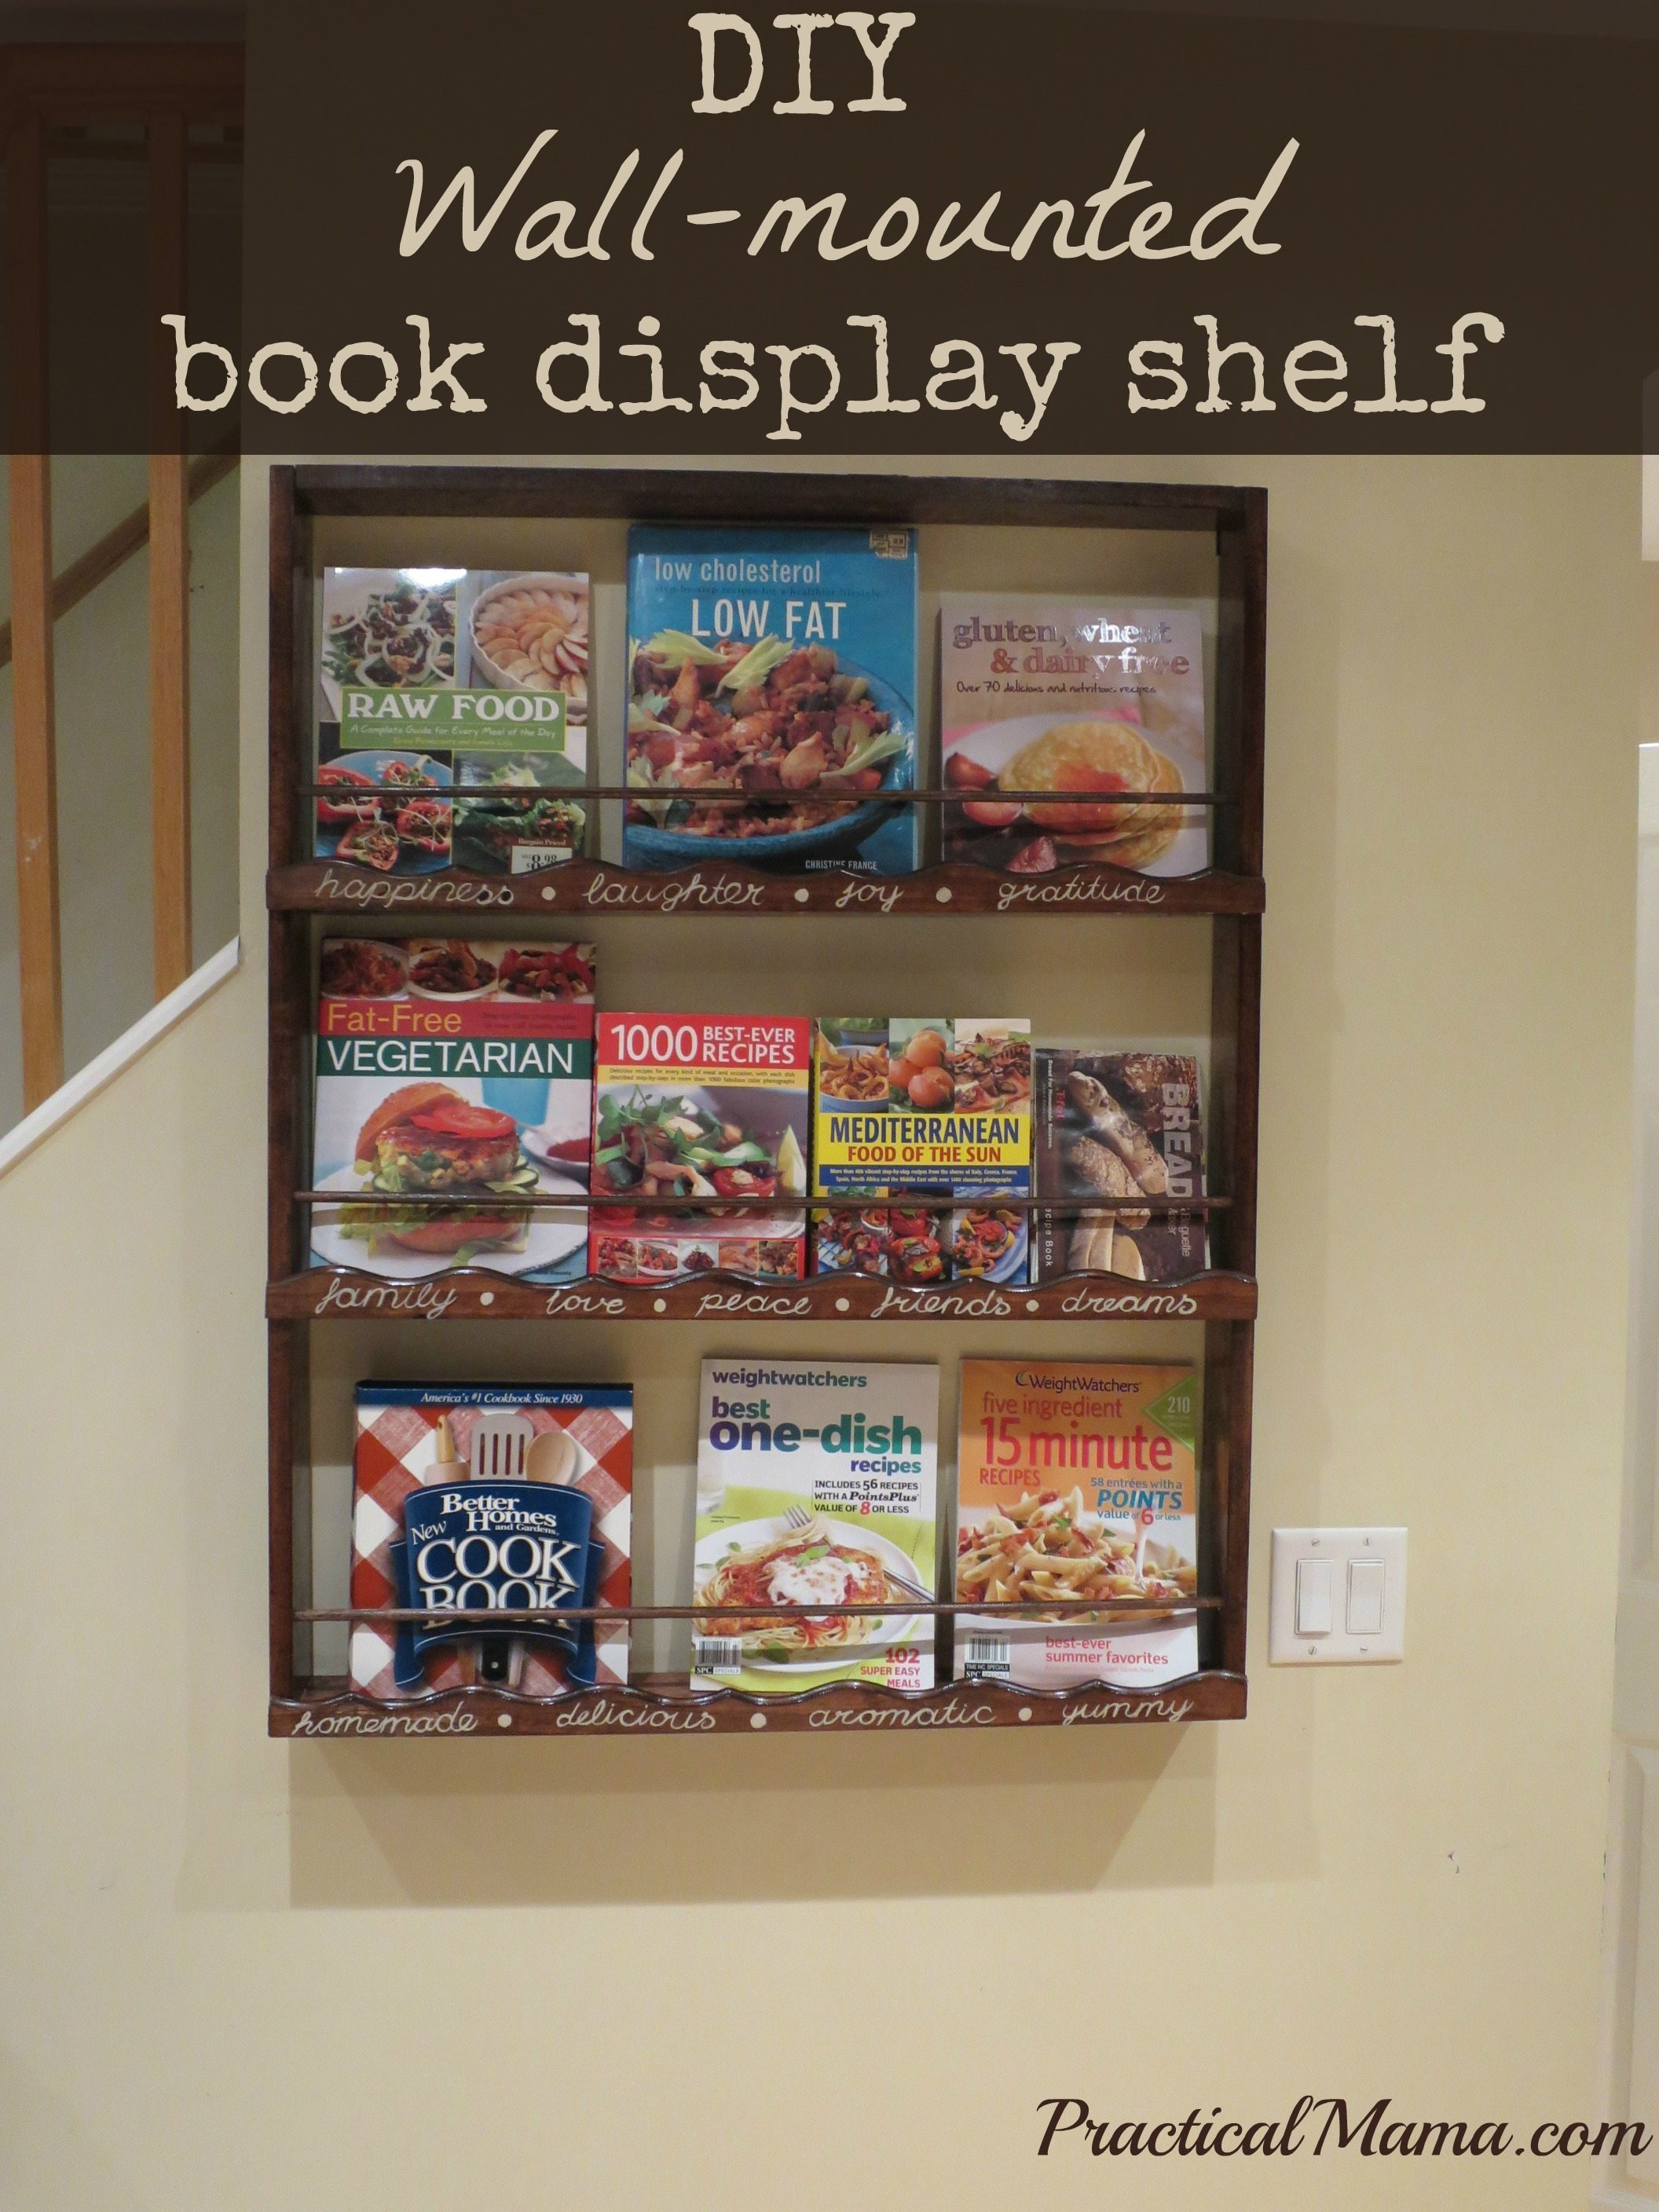 Diy wall mounted book display shelf for my cookbooks bookdisplayshelf forumfinder Image collections